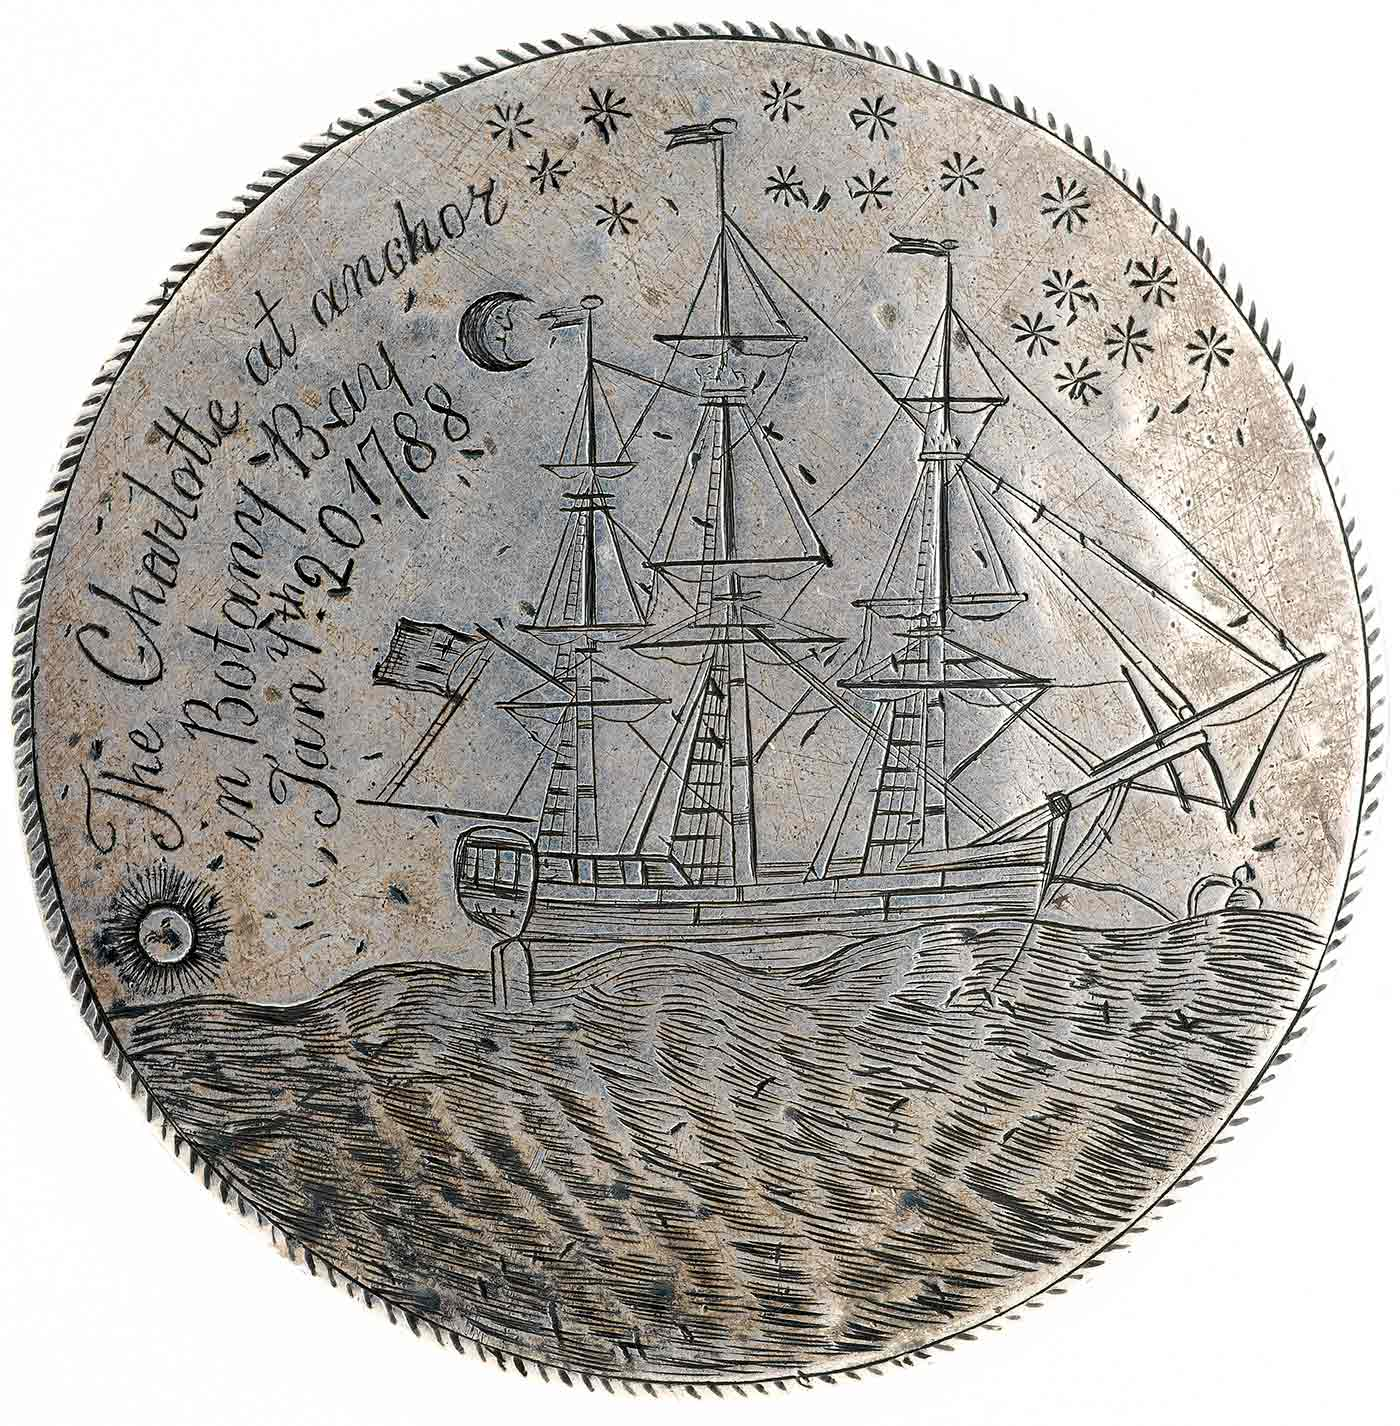 Front view of a silver medal with inscription of text and a ship at sea. - click to view larger image